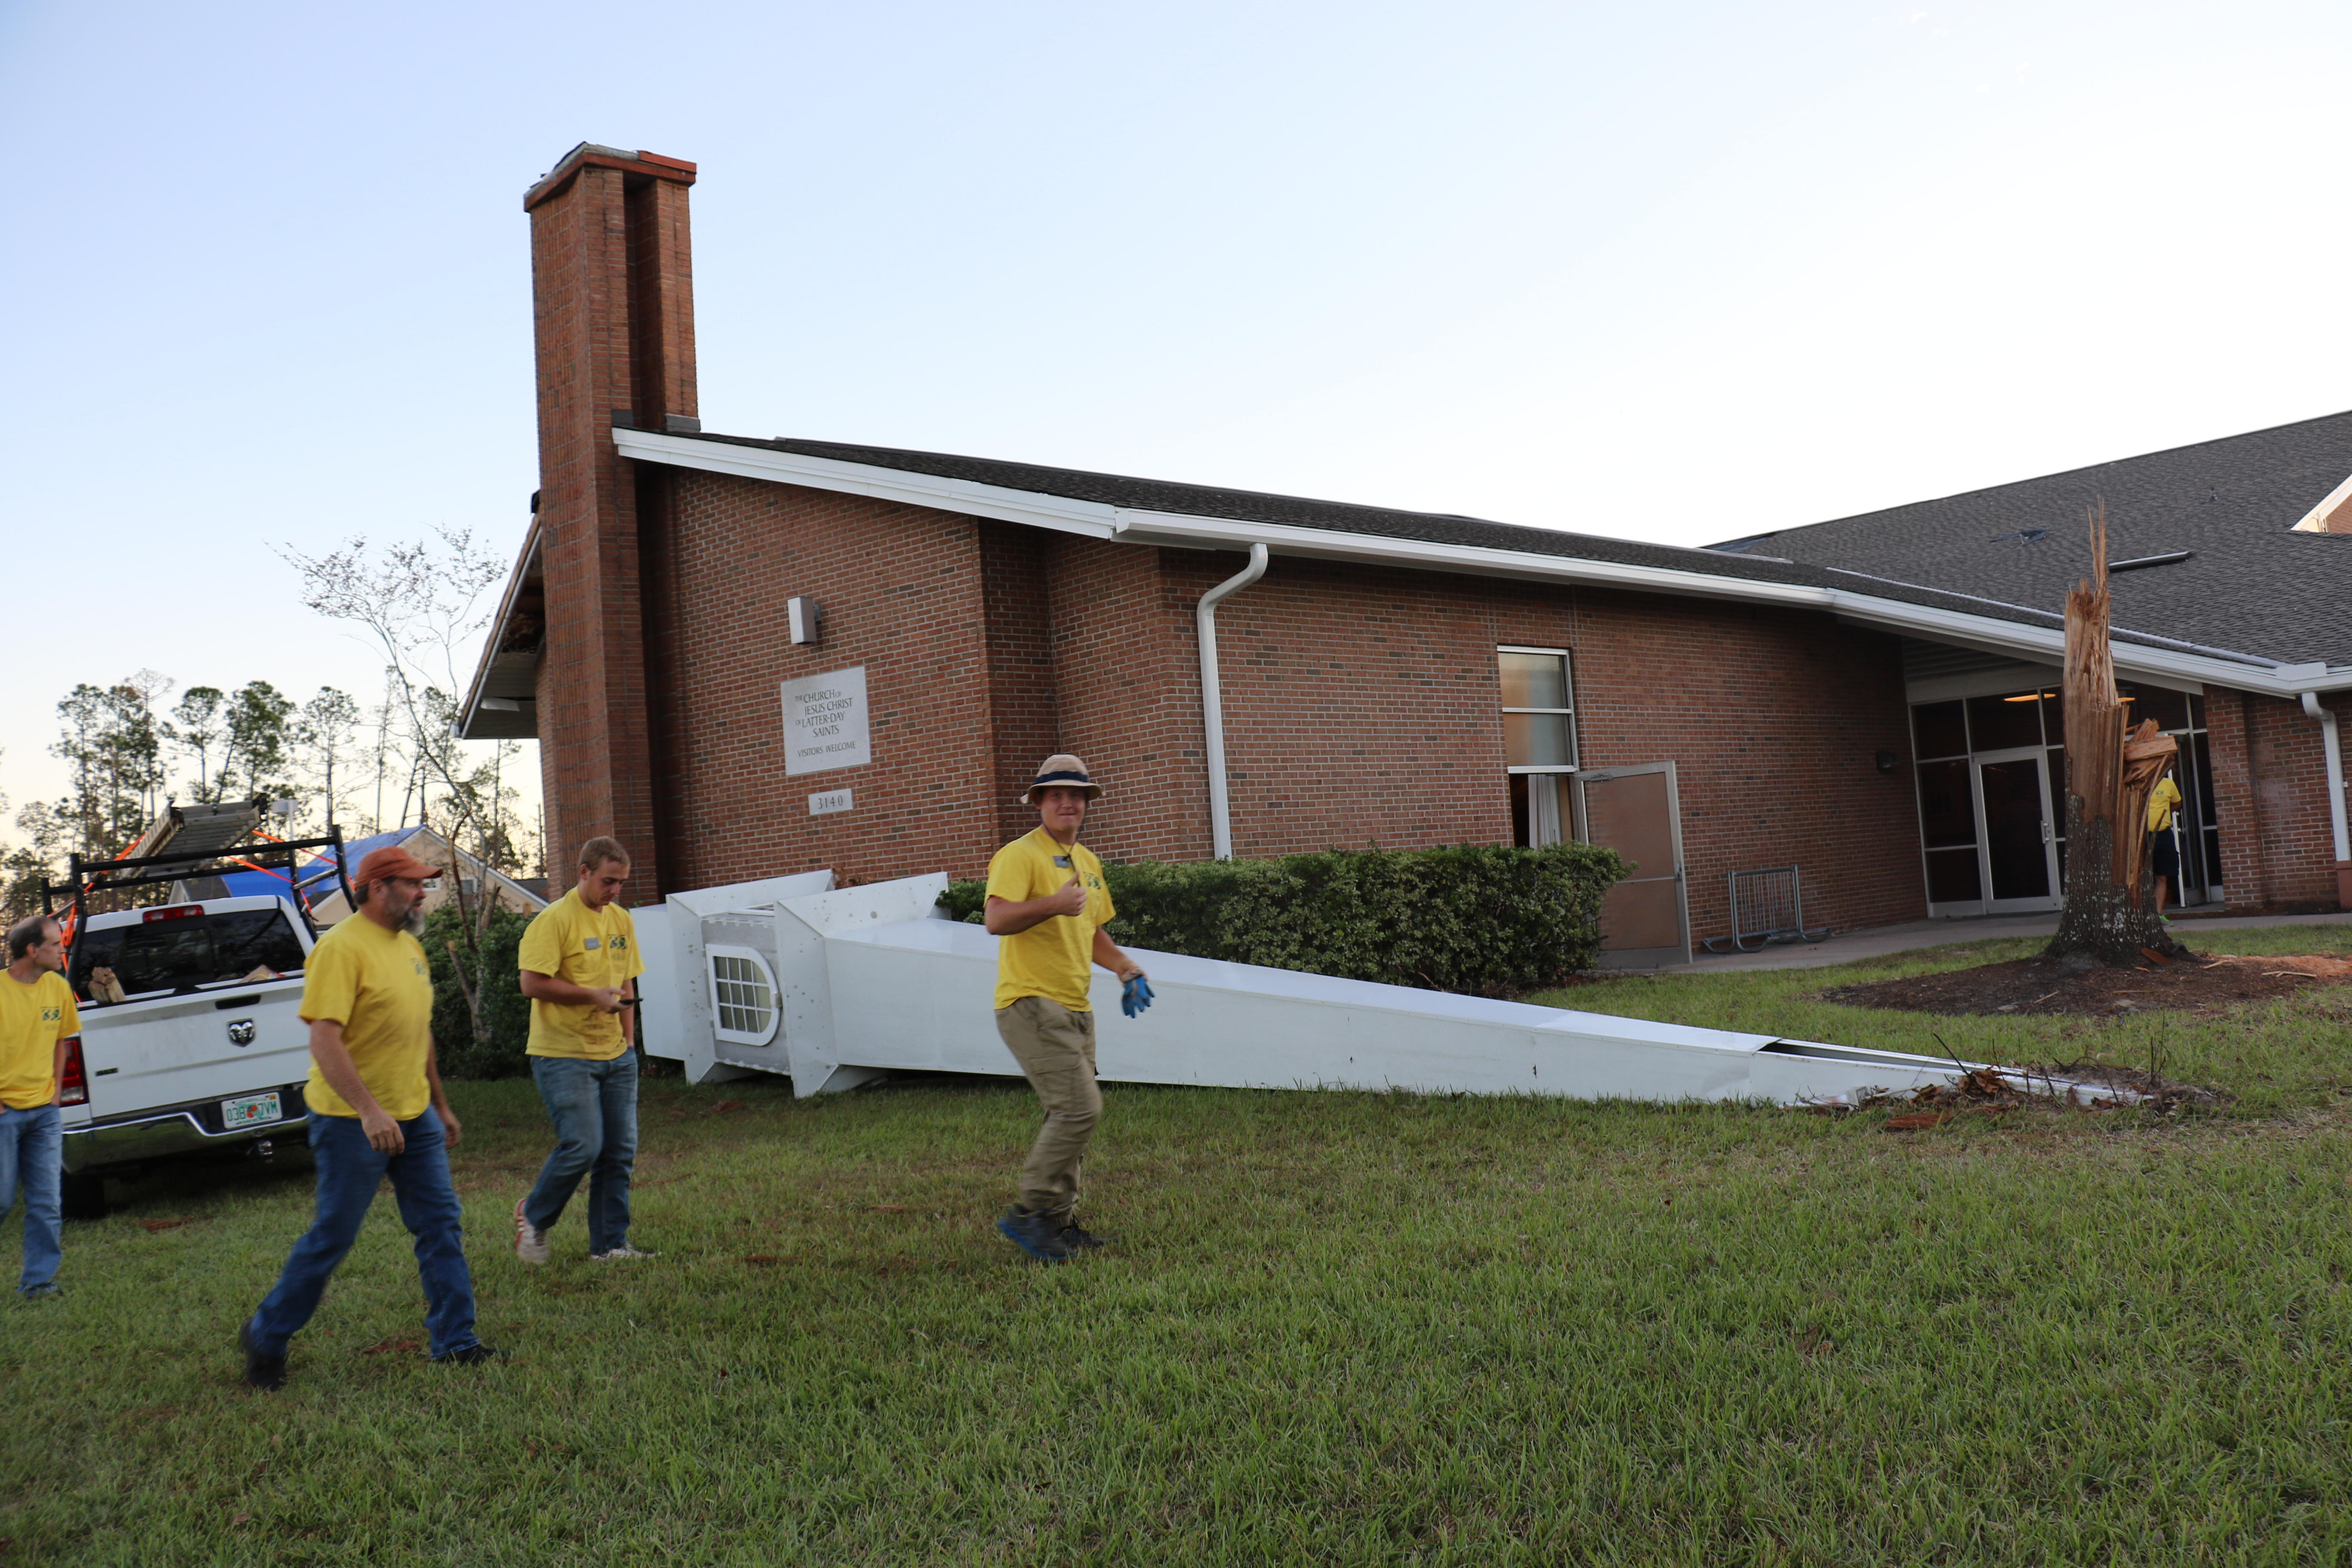 Helping Hands volunteers walk past fallen steeple outside the Panama City Florida Stake Center on Oct. 21, 2018.